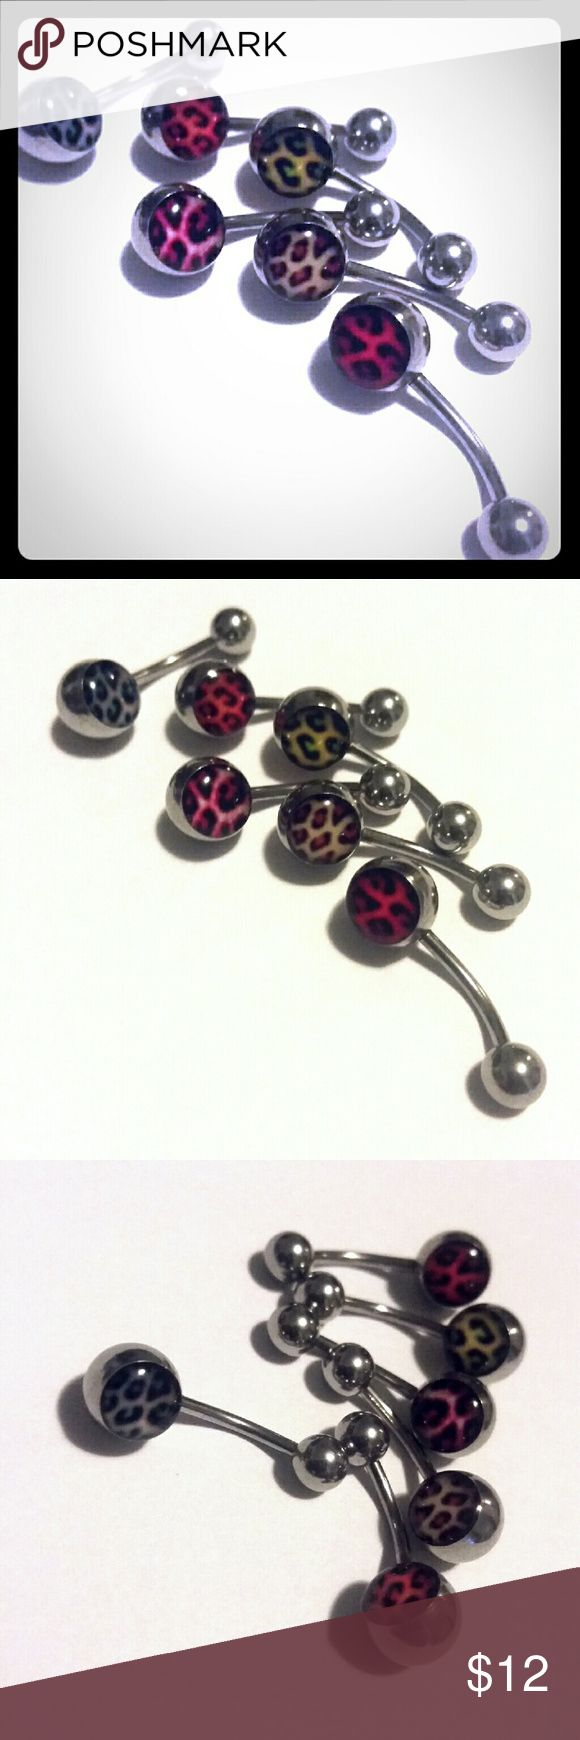 Bundle 6 Pc Leopard Belly Button Rings Rainbow Bundle of six leopard print belly button rings / curved barbells in all different colors as pictured. Never used. Jewelry